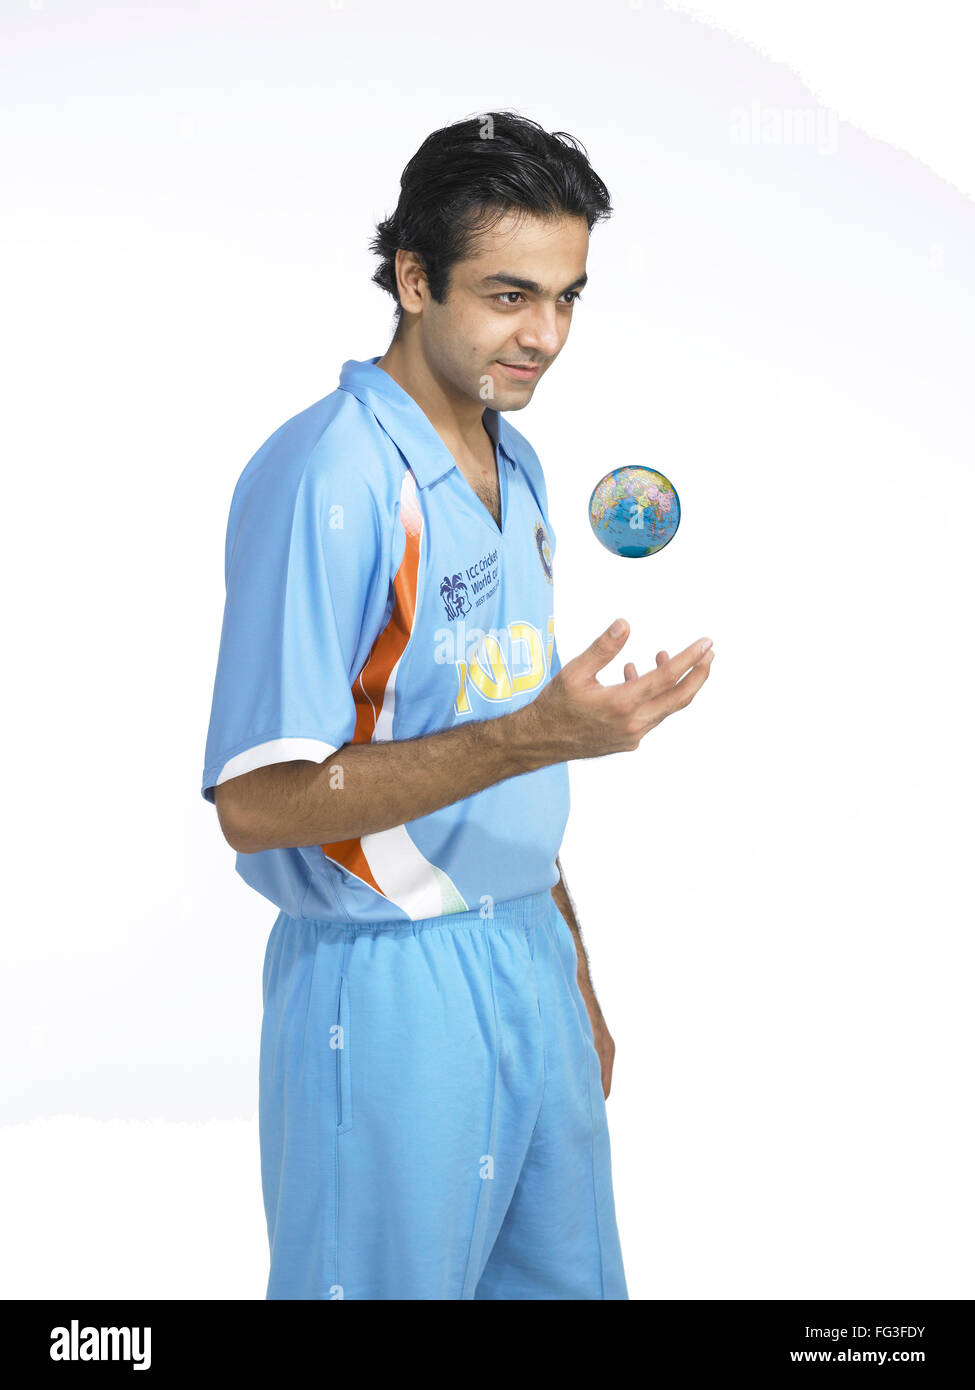 Indian bowler juggling with globe MR#702A - Stock Image